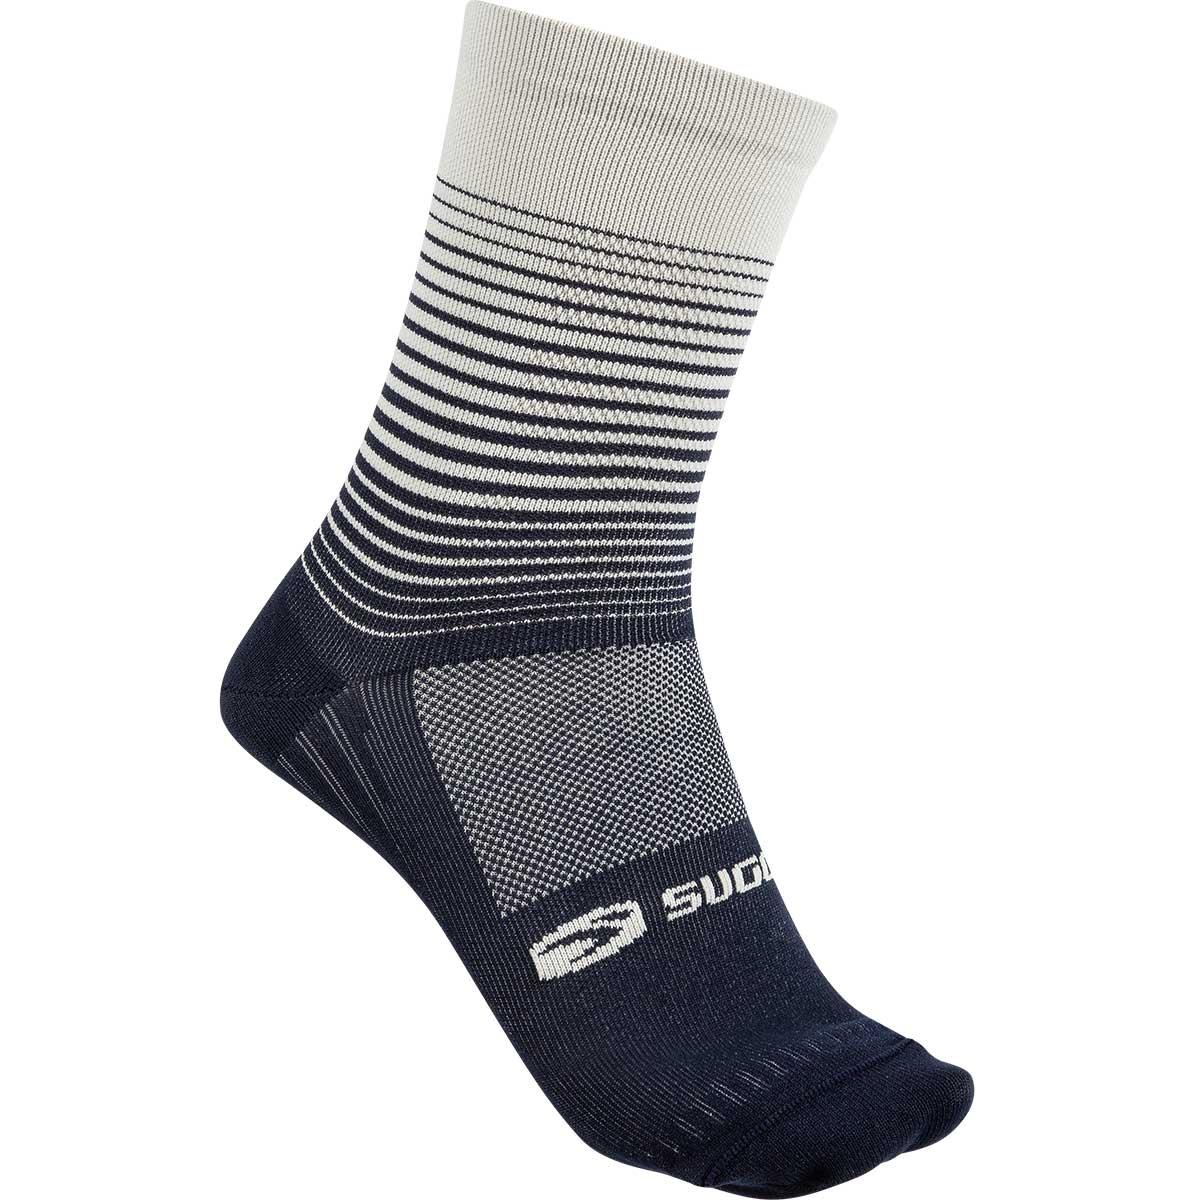 Sugoi RS Crew Sock Printed in Deep Navy